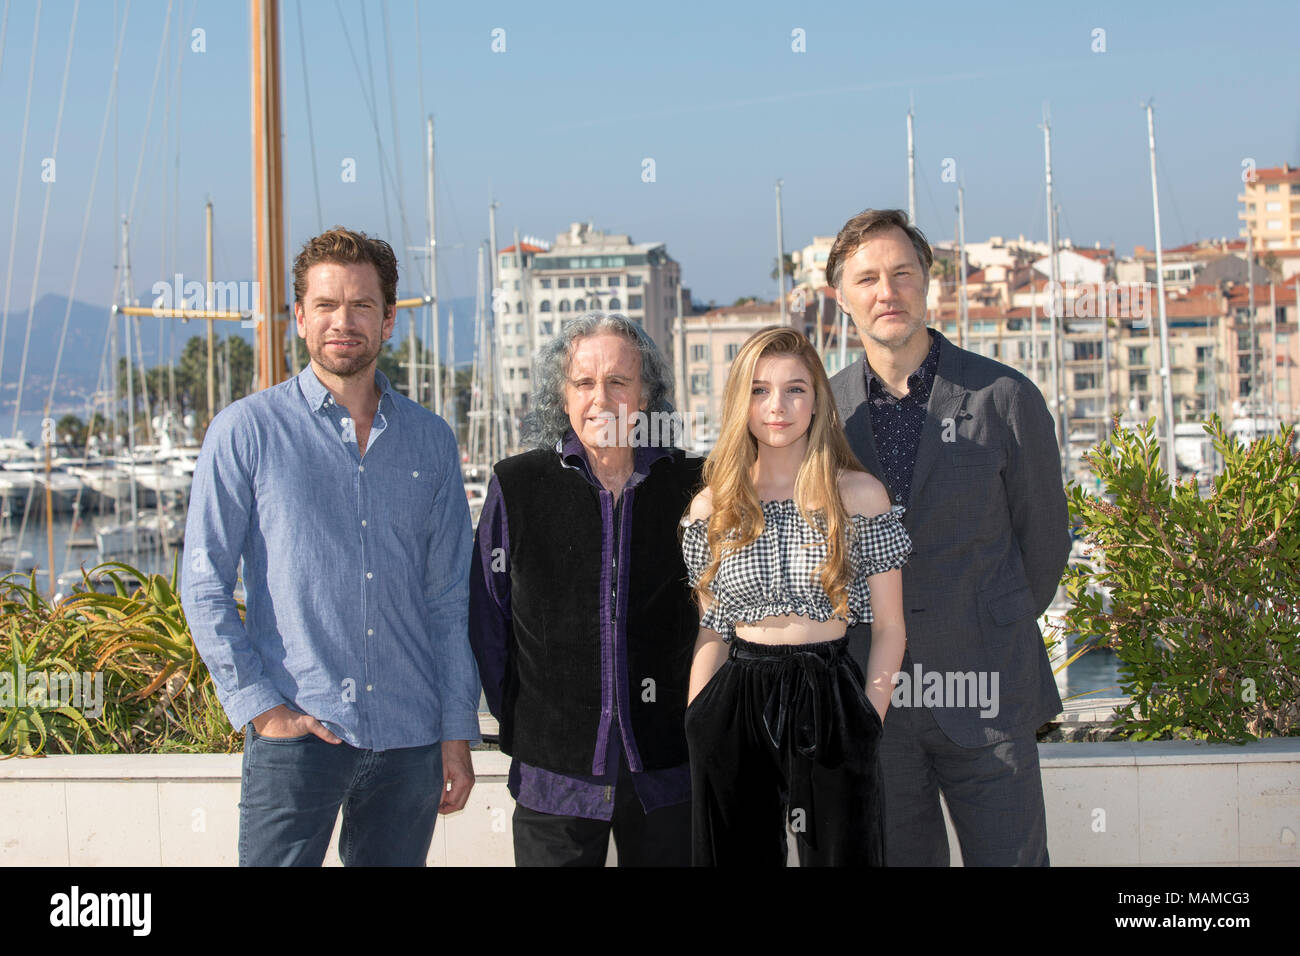 Actor Nikolaj Lie Kaas, British musician Donovan Philip Leitch, British actress Eleanor Worthington Cox attend the MIPCOM, Cannes, Oct. 16, 2017 - Stock Image